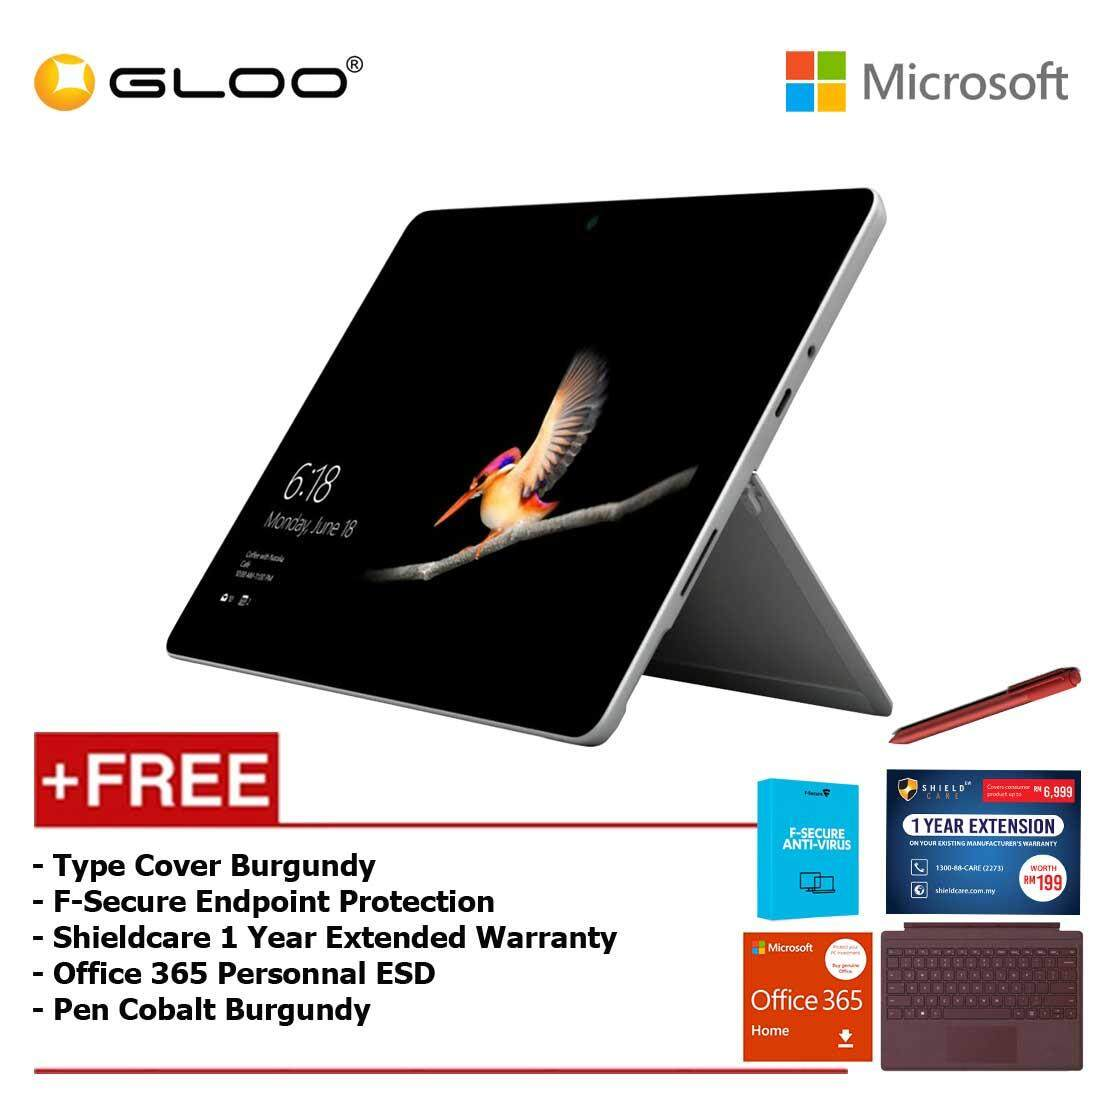 Microsoft Surface Go Y/8GB 128GB + Surface Go Type Cover Burgundy + Shieldcare 1 Year Extended Warranty 1 Year Extended Warranty + F-Secure Anti Virus + Office 365 Personal (ESD) + Pen Burgundy Malaysia